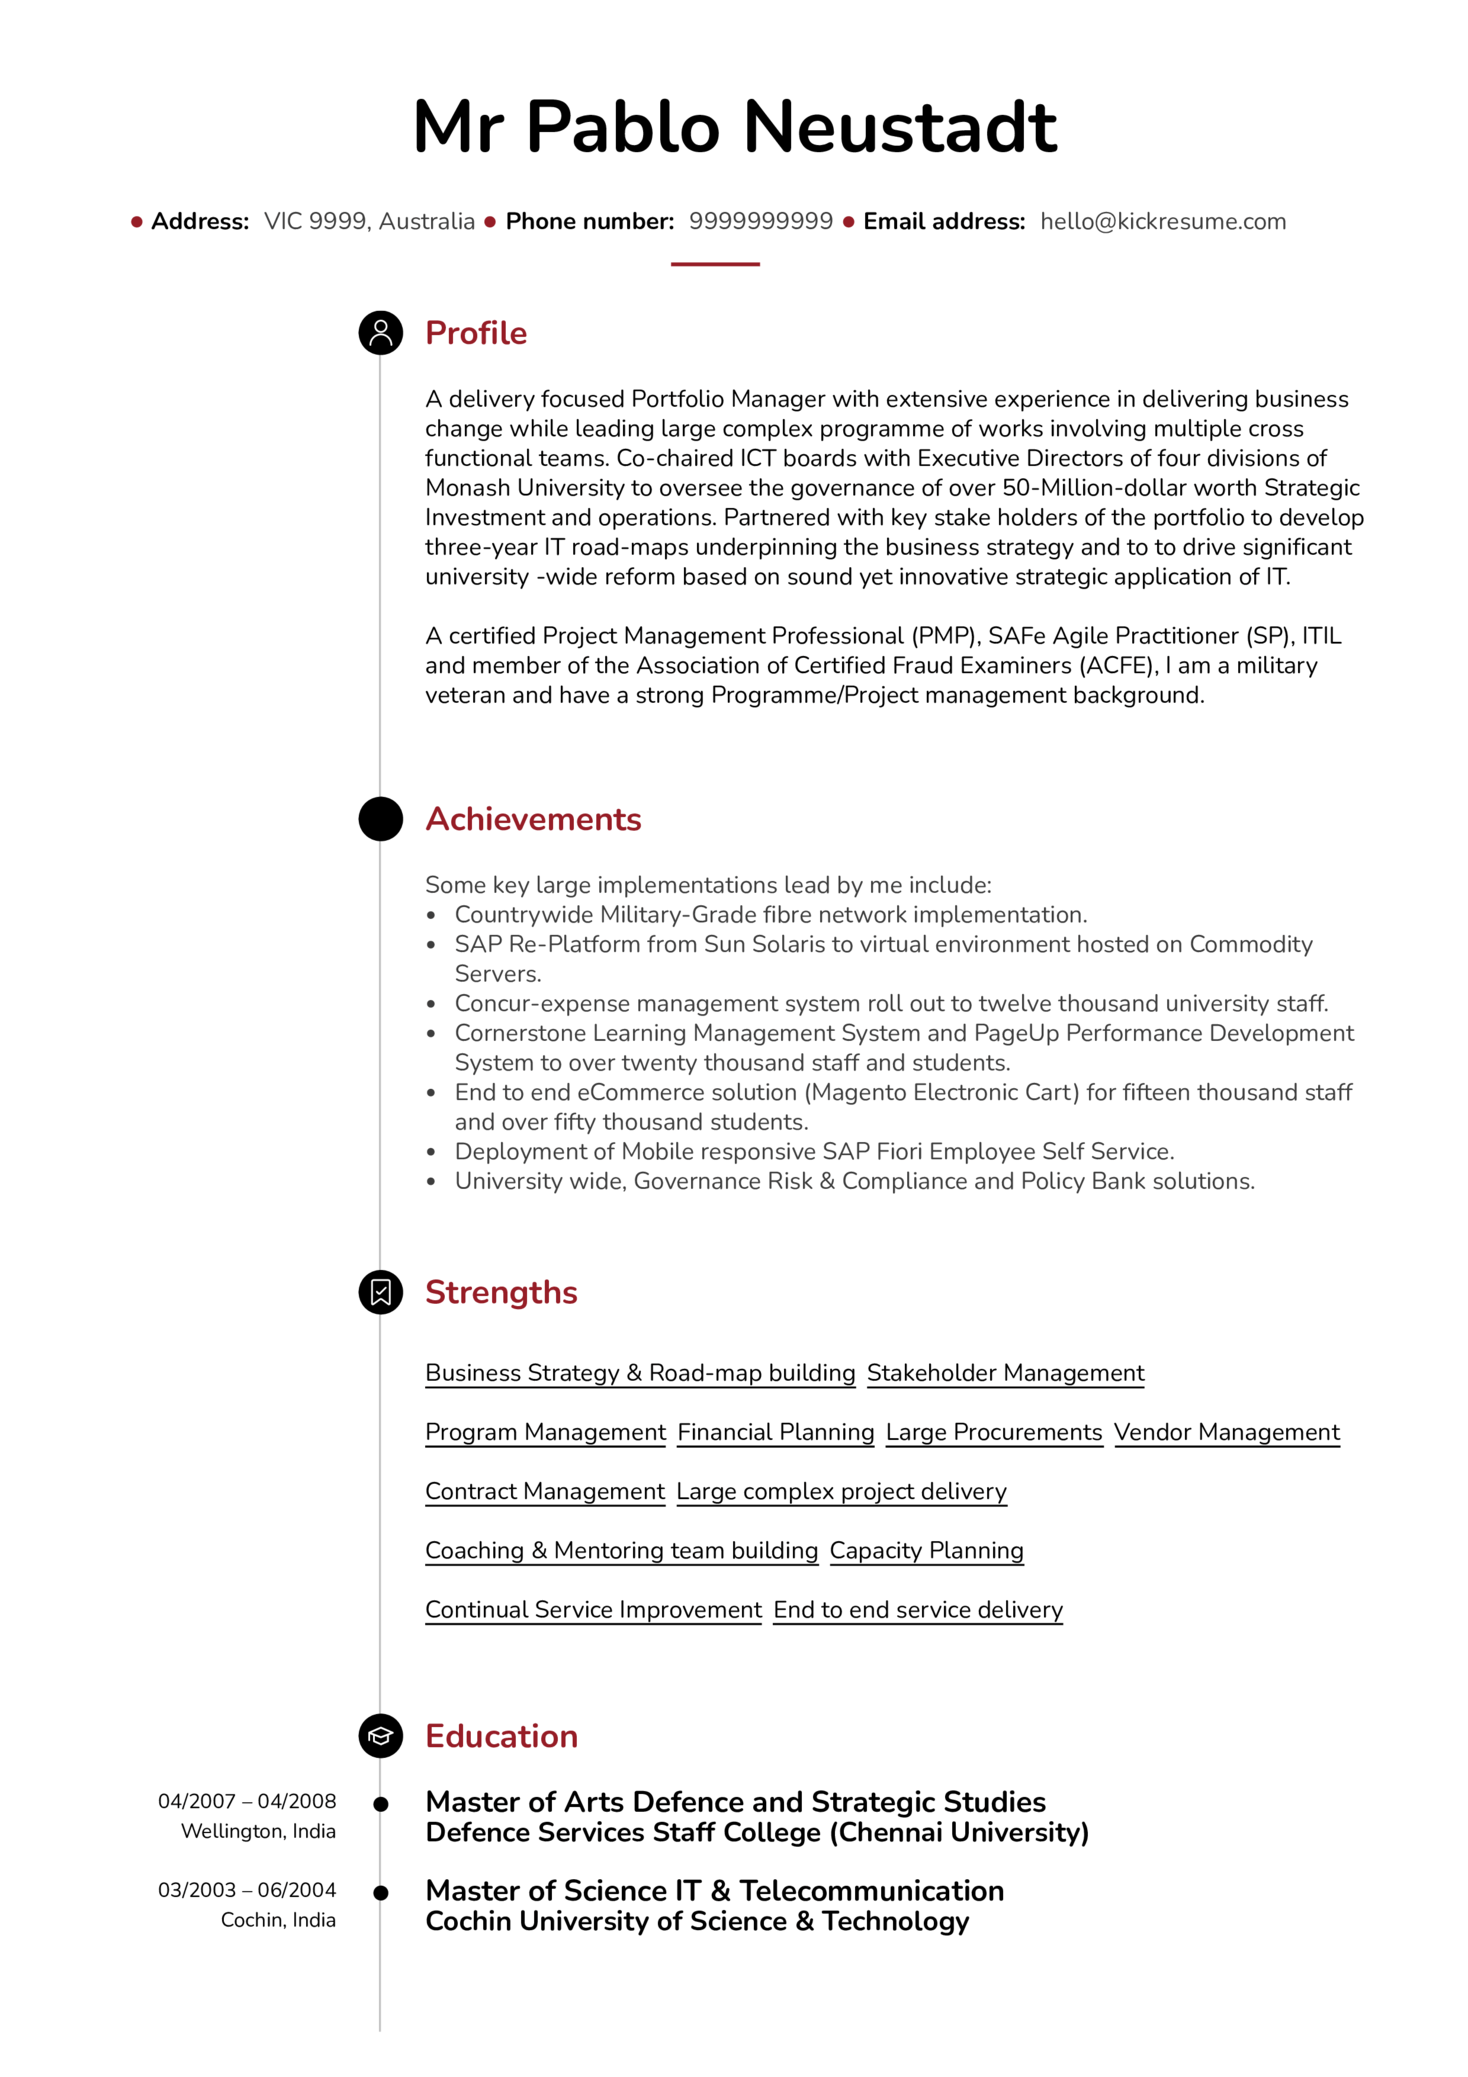 Senior Project Manager Resume Sample (parte 1)